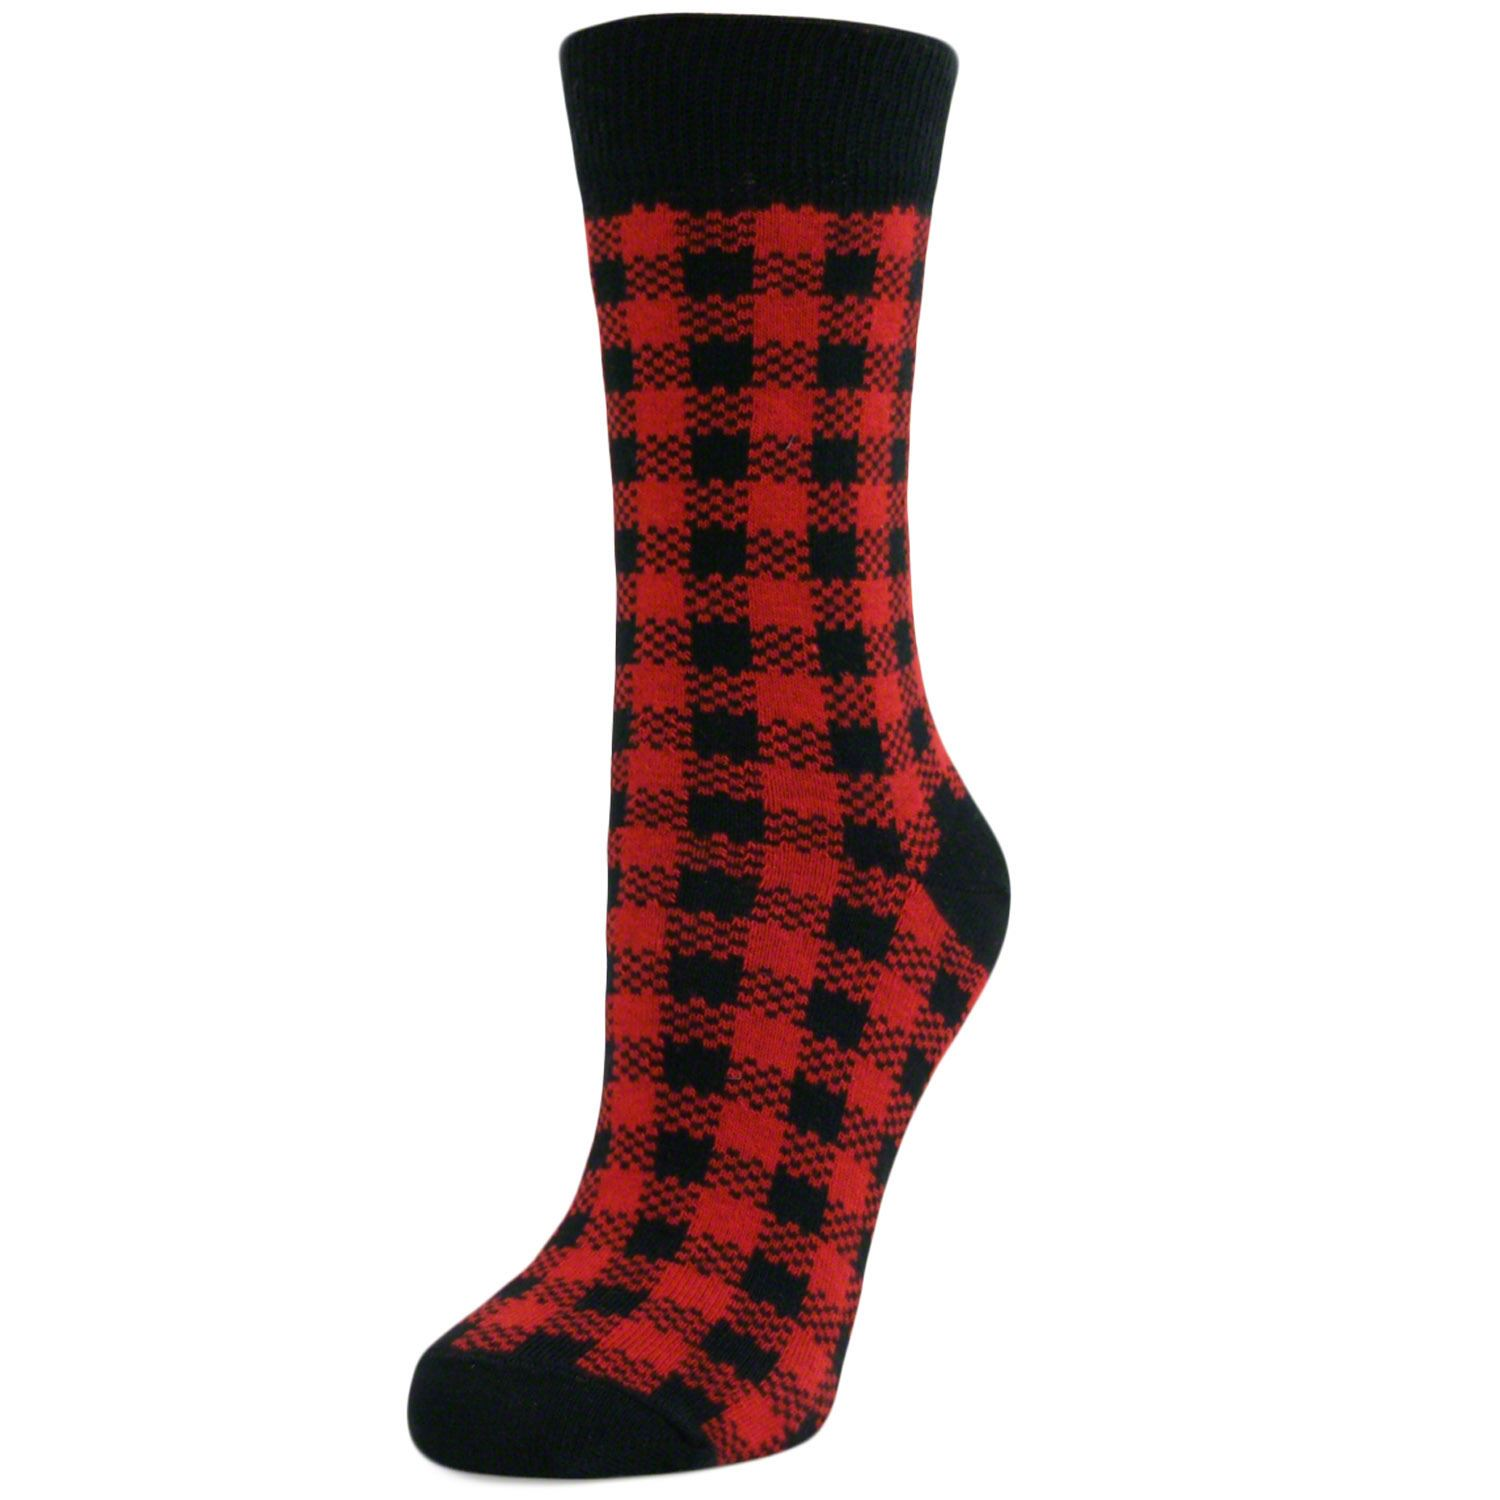 Womens-Ladies-Girls-Checked-Mid-Calf-Ankle-Crew-Short-Patterned-Socks-New-Lot